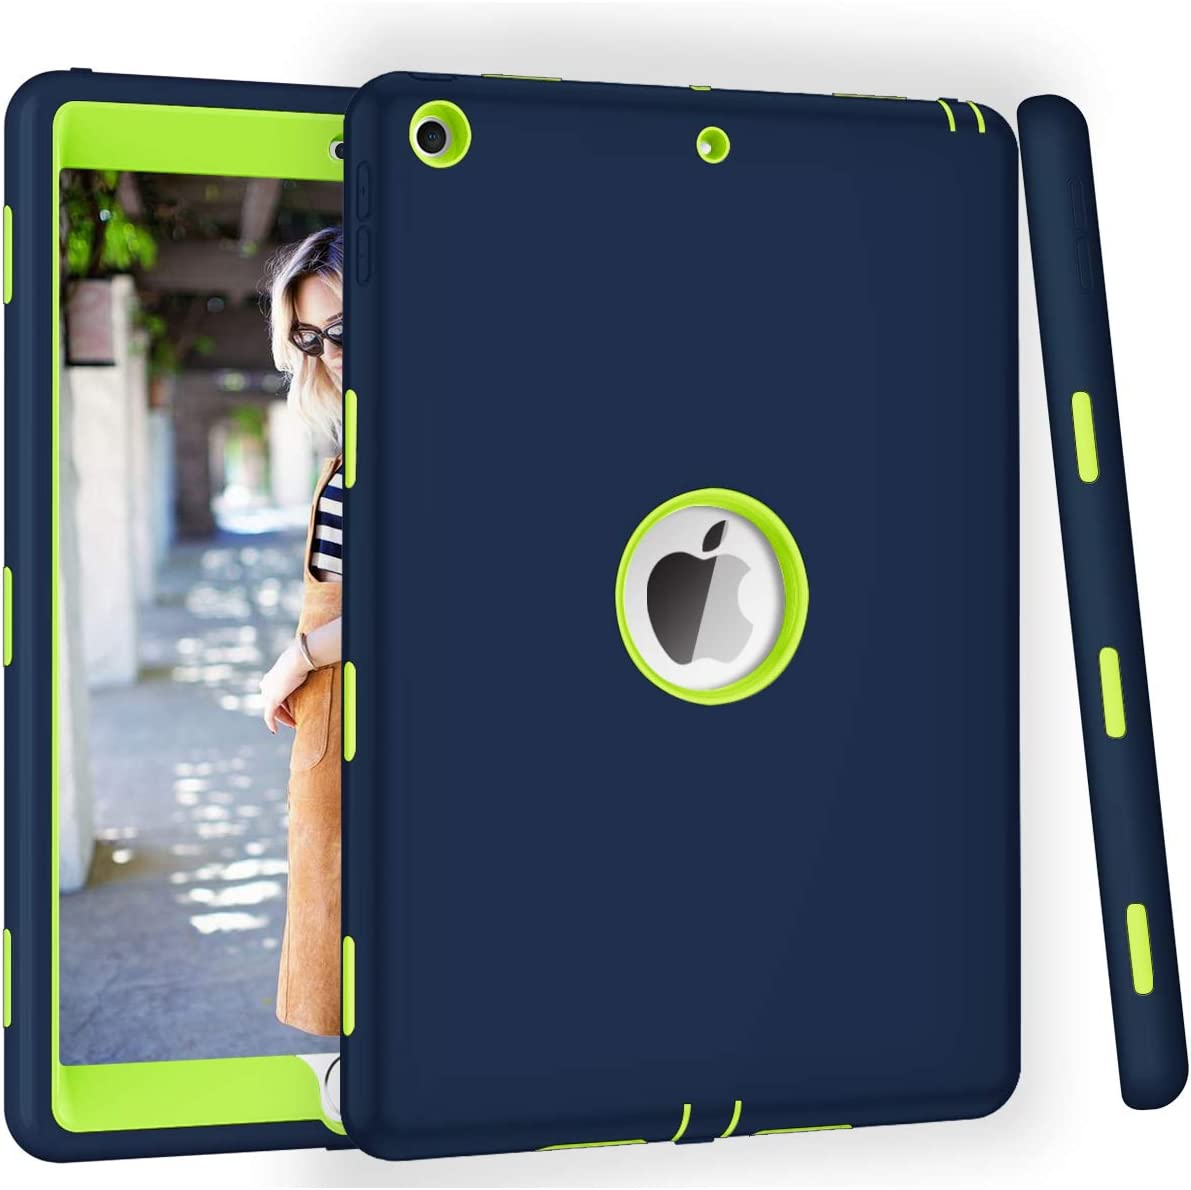 ZHK iPad 8th/7th Generation Case, iPad 10.2 2020/2019 Case, Heavy Duty Shockproof Case High Impact Resistant Rugged Hybrid 3 Layer Full-Body Protective Case Cover for Apple iPad 10.2 inch-Blue Green